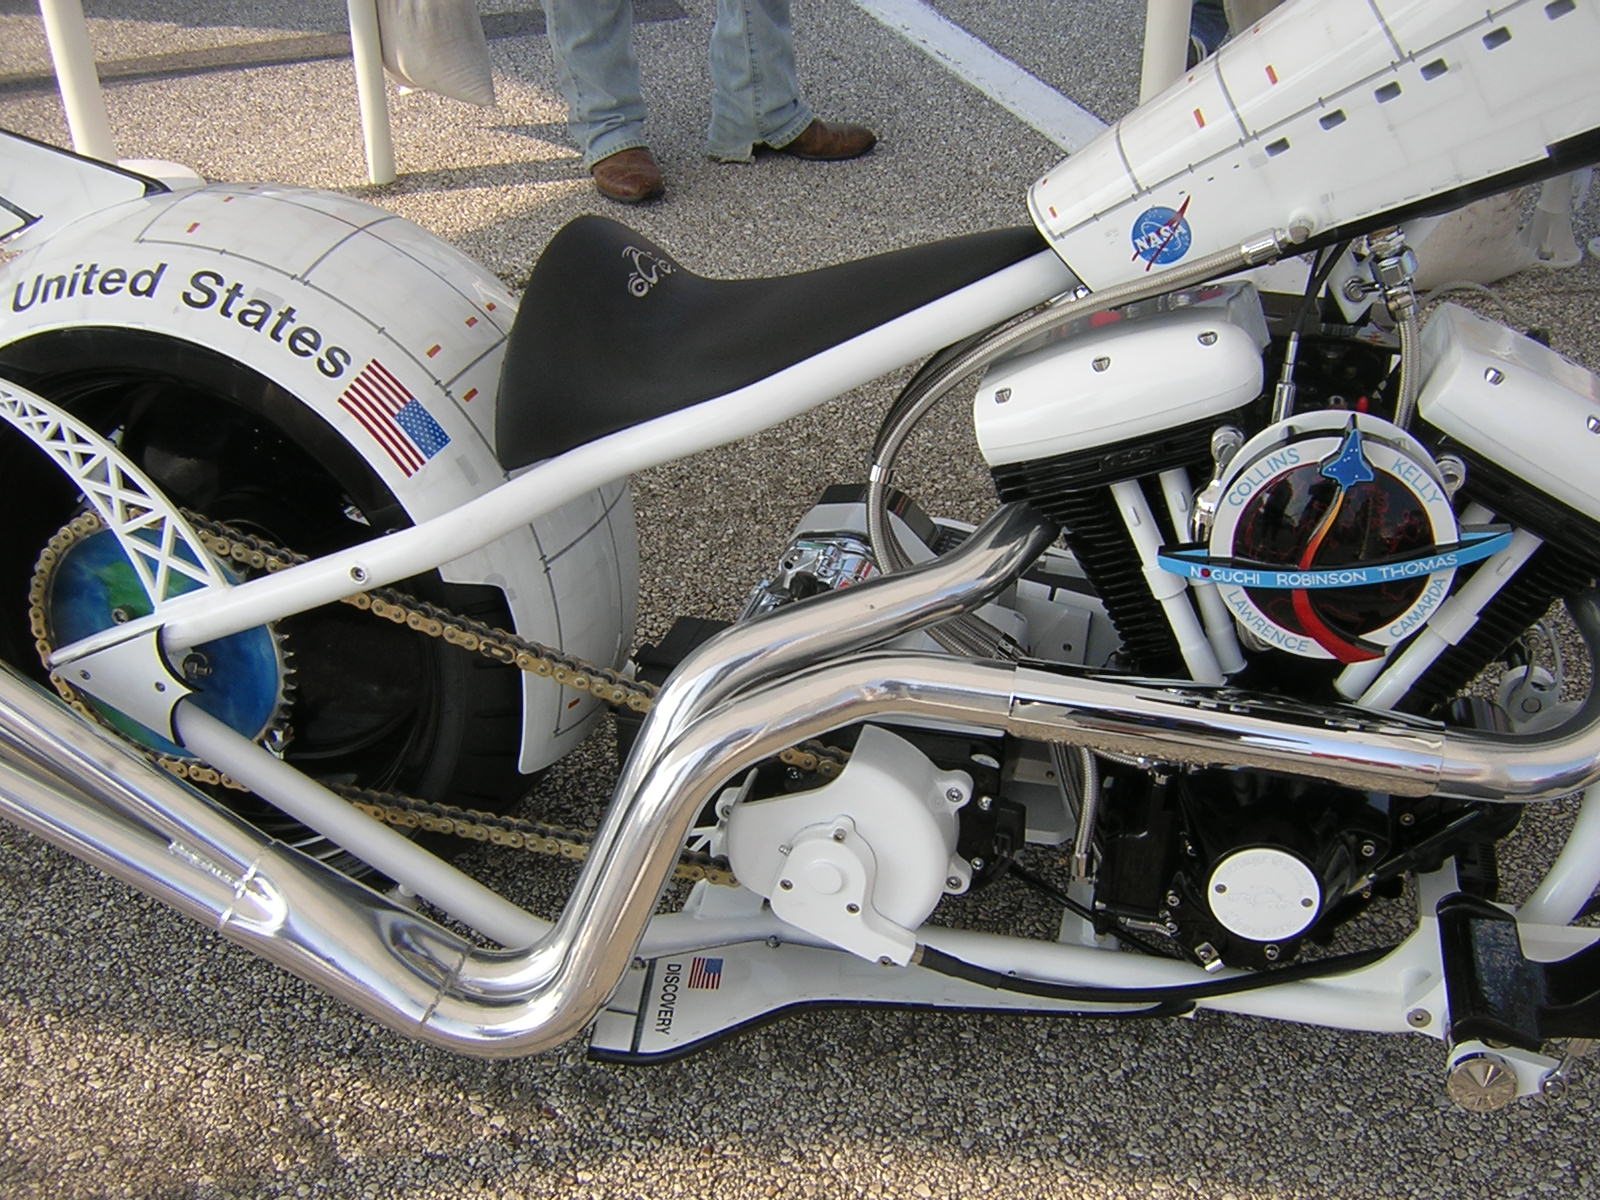 space shuttle bike occ - photo #8